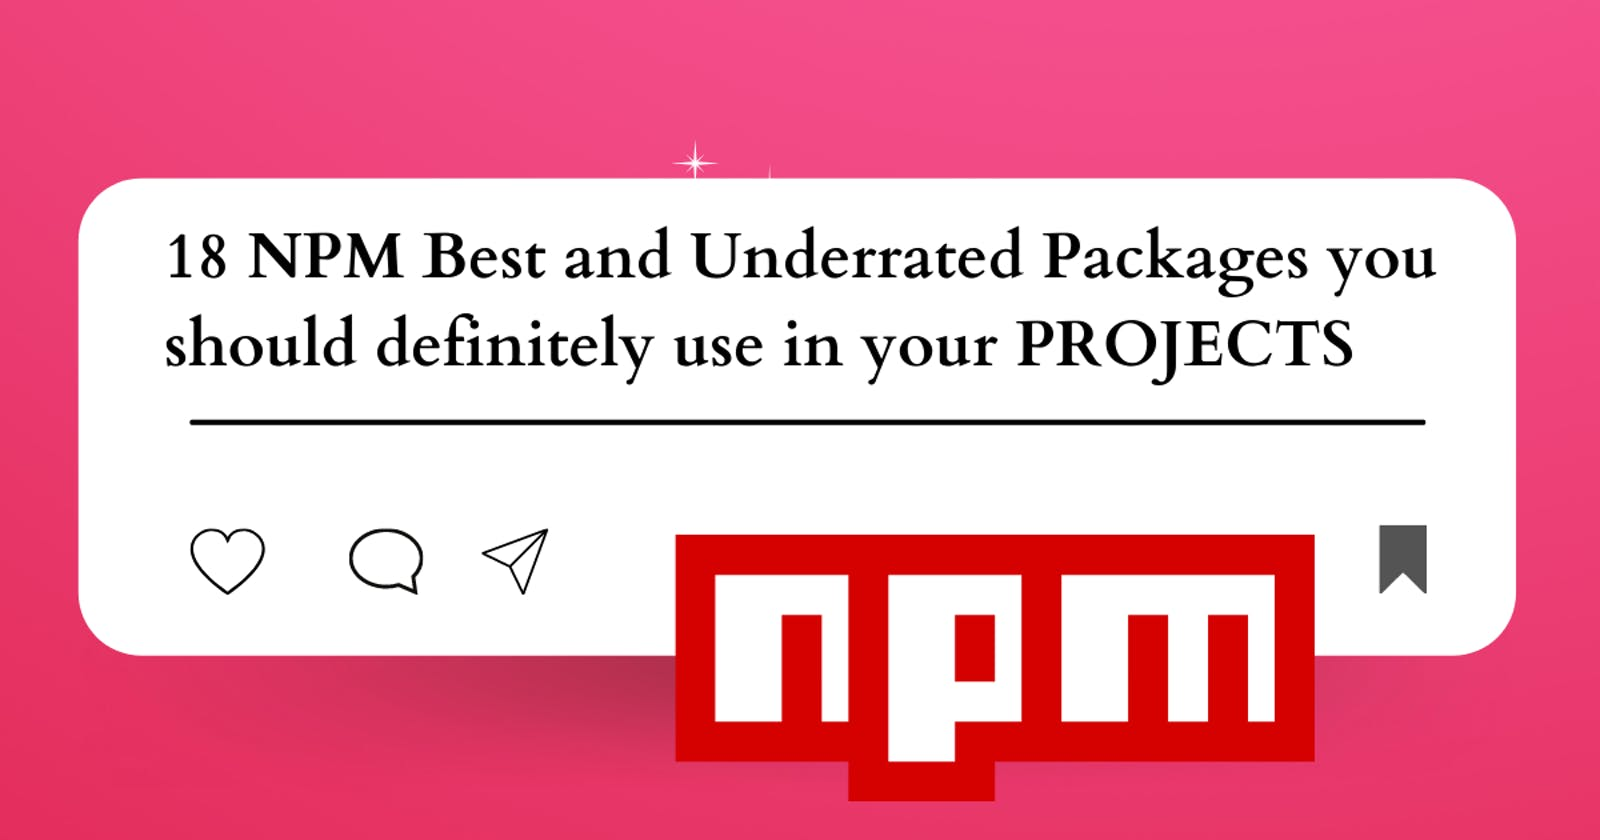 18 NPM Best and Underrated packages you should use in your projects